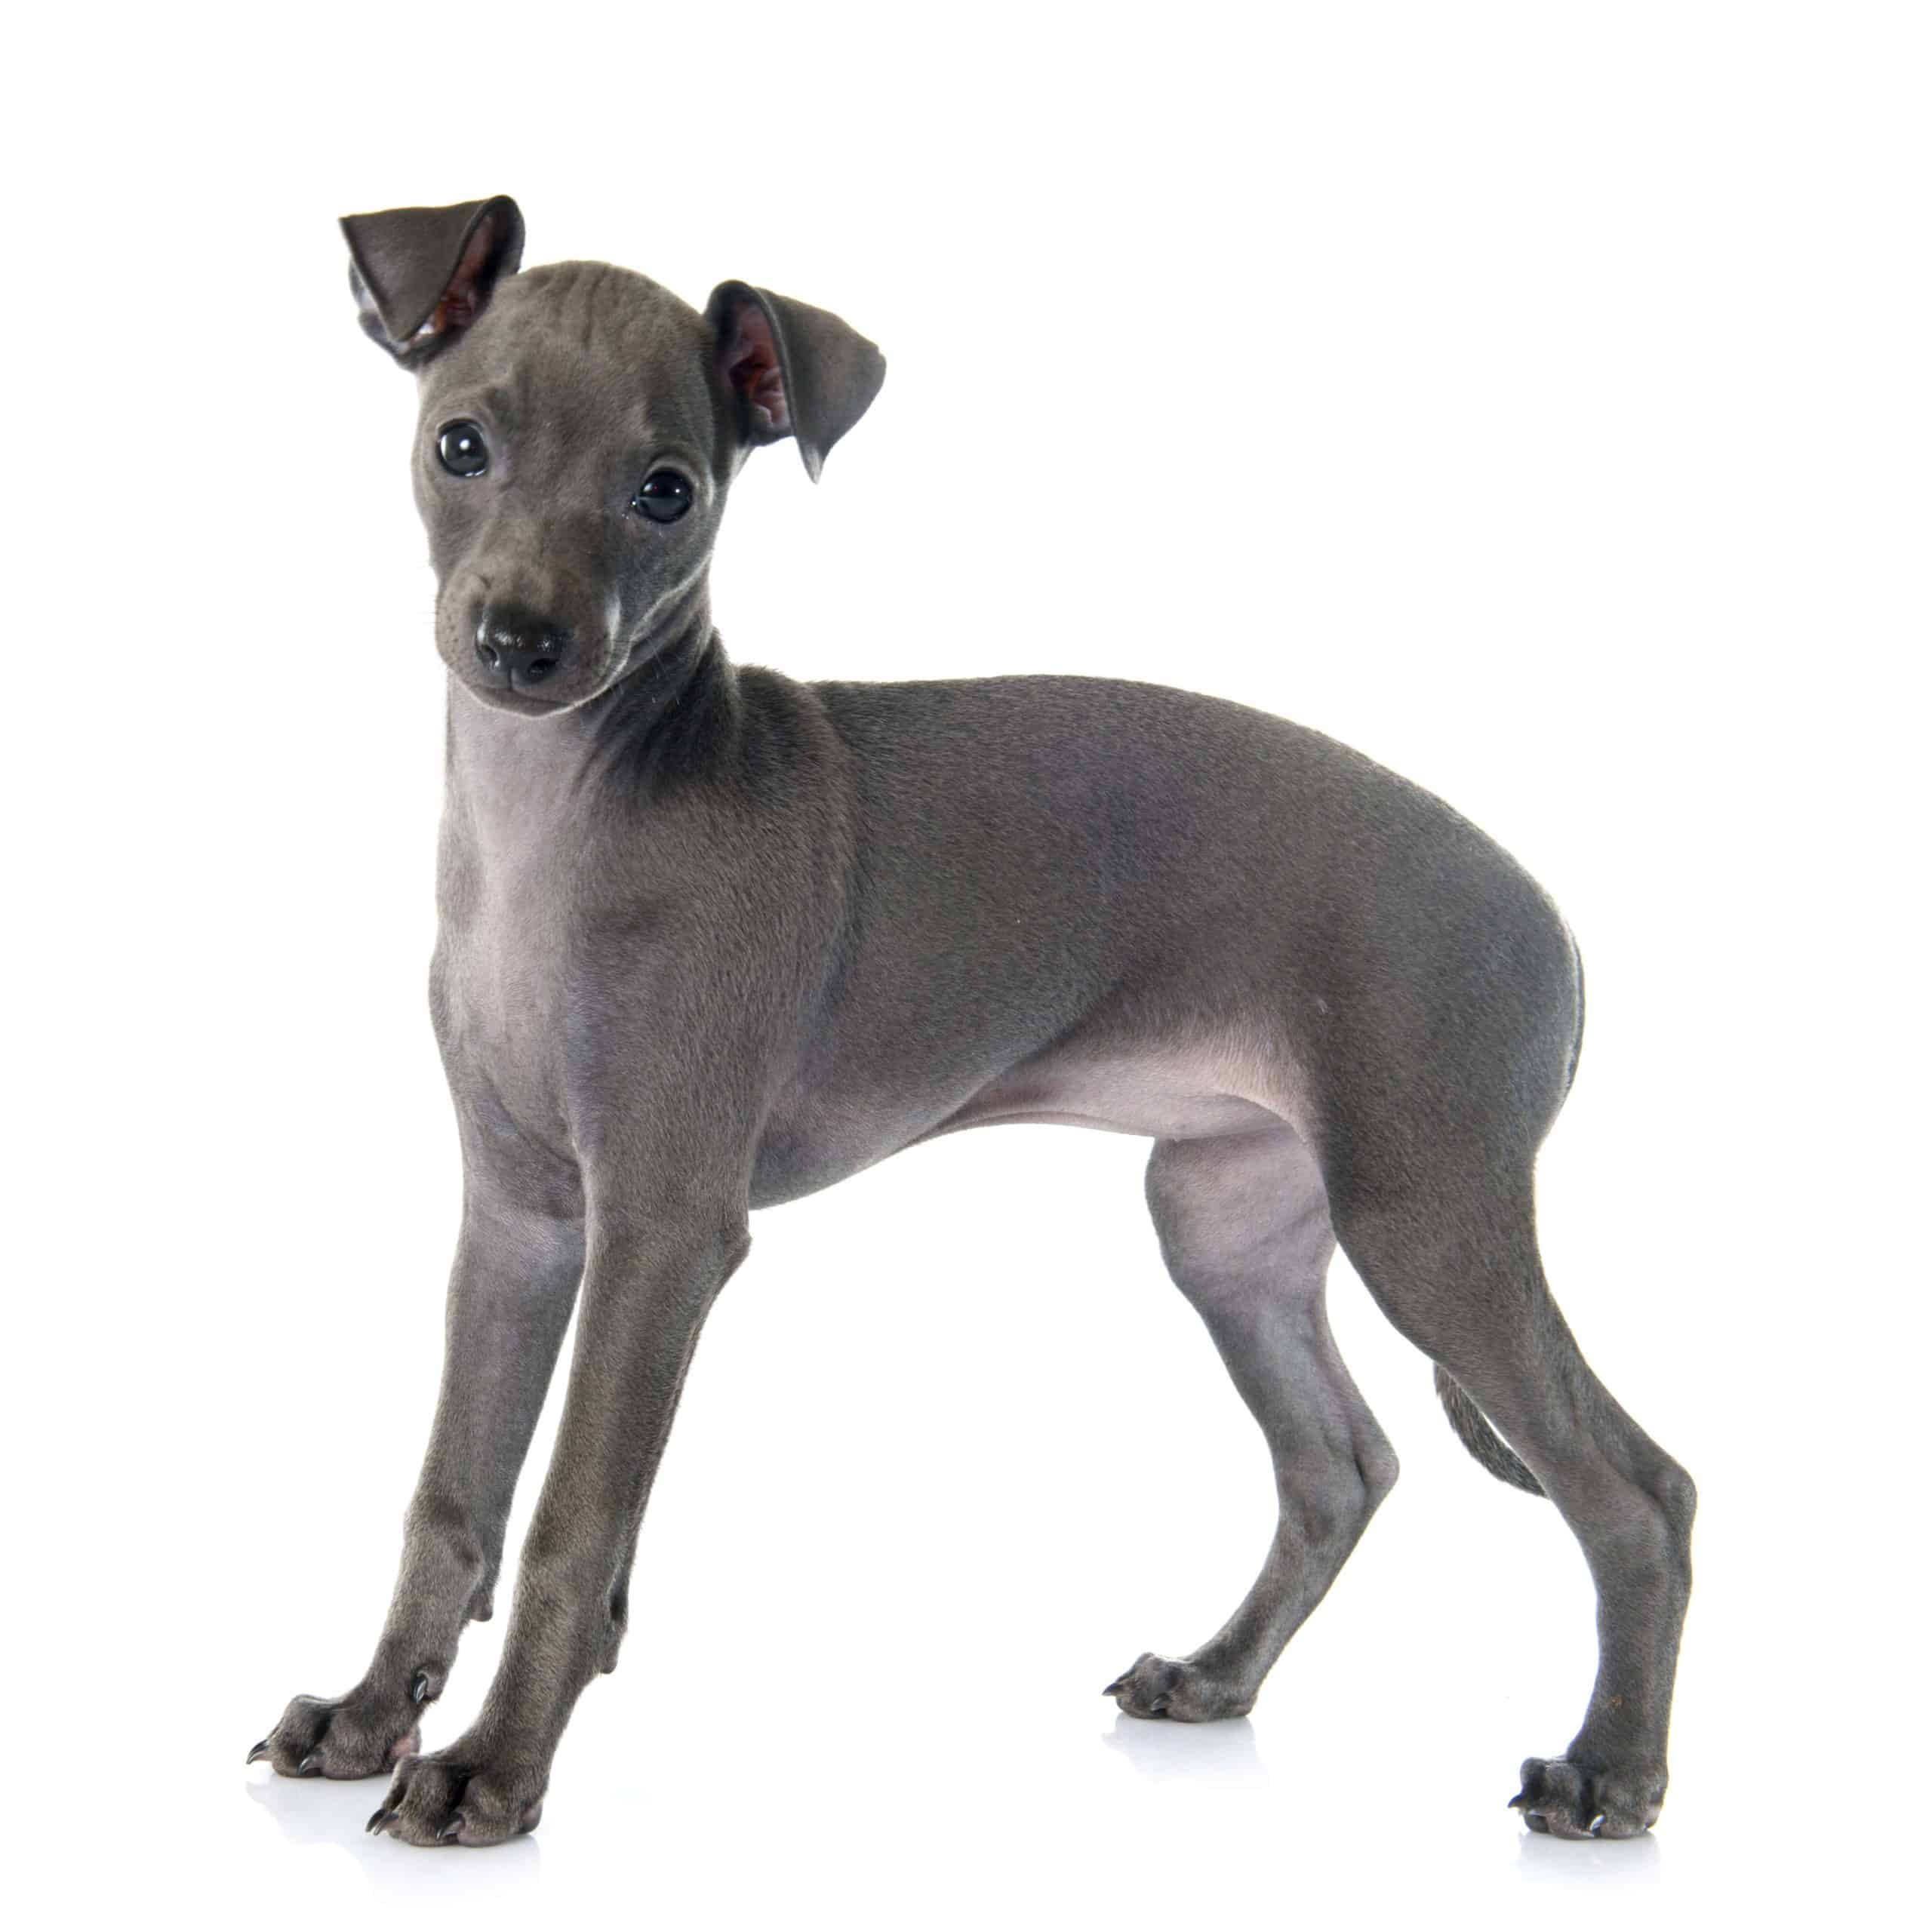 Grey Italian greyhound puppy. An Italian greyhound is a relatively low maintenance dog with short hair and small stature; however, your Iggy will need frequent exercise, a safe place to sleep, and routine checkups for the best health.